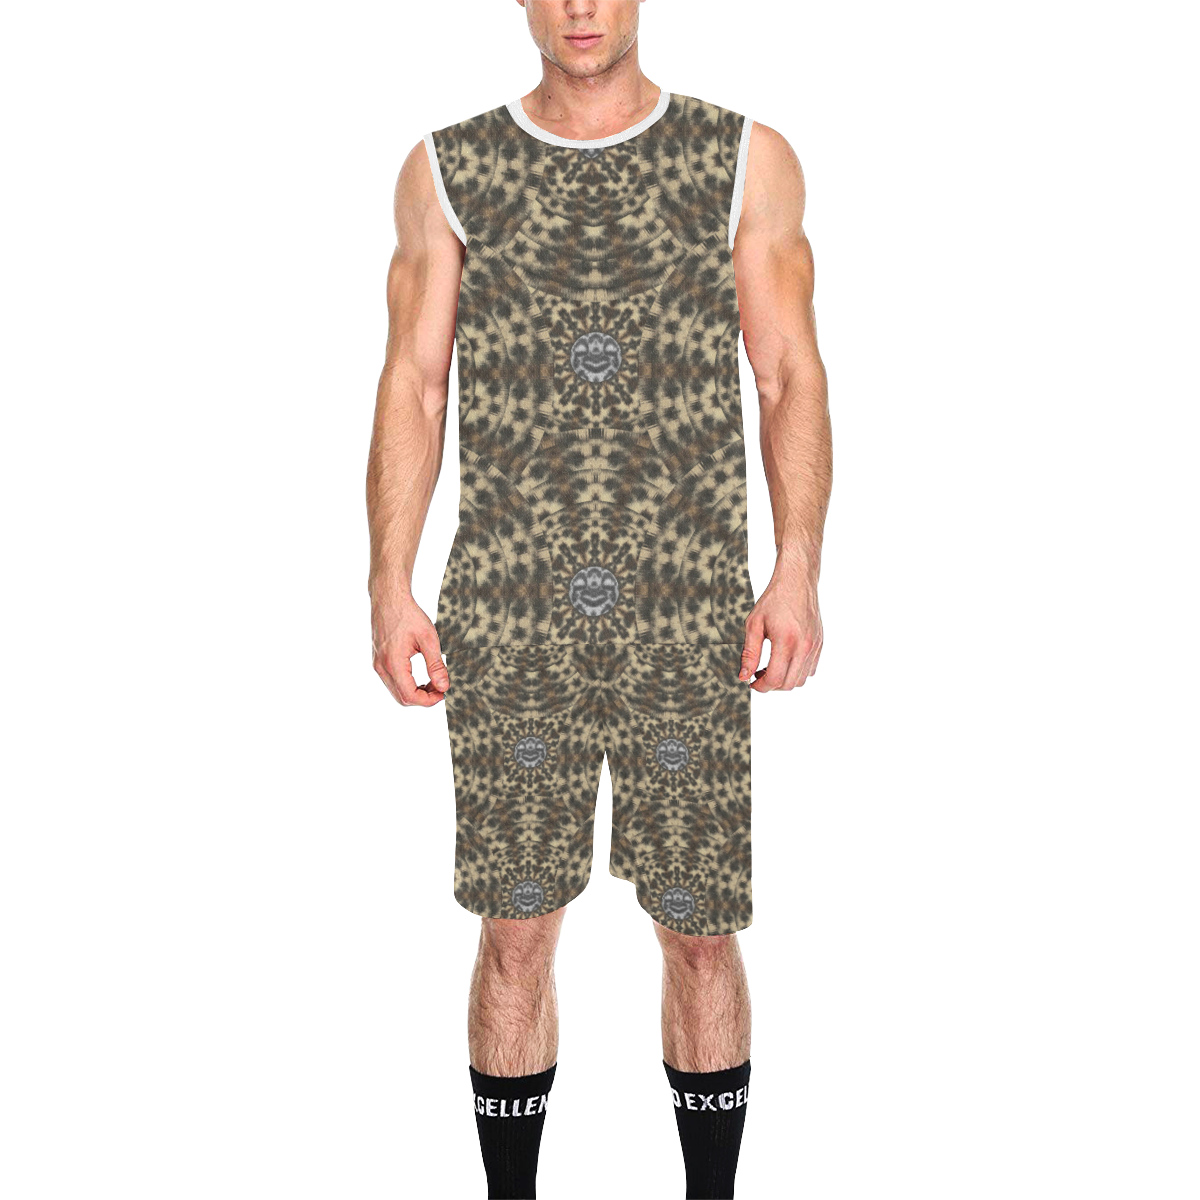 I am big cat with sweet catpaws decorative All Over Print Basketball Uniform